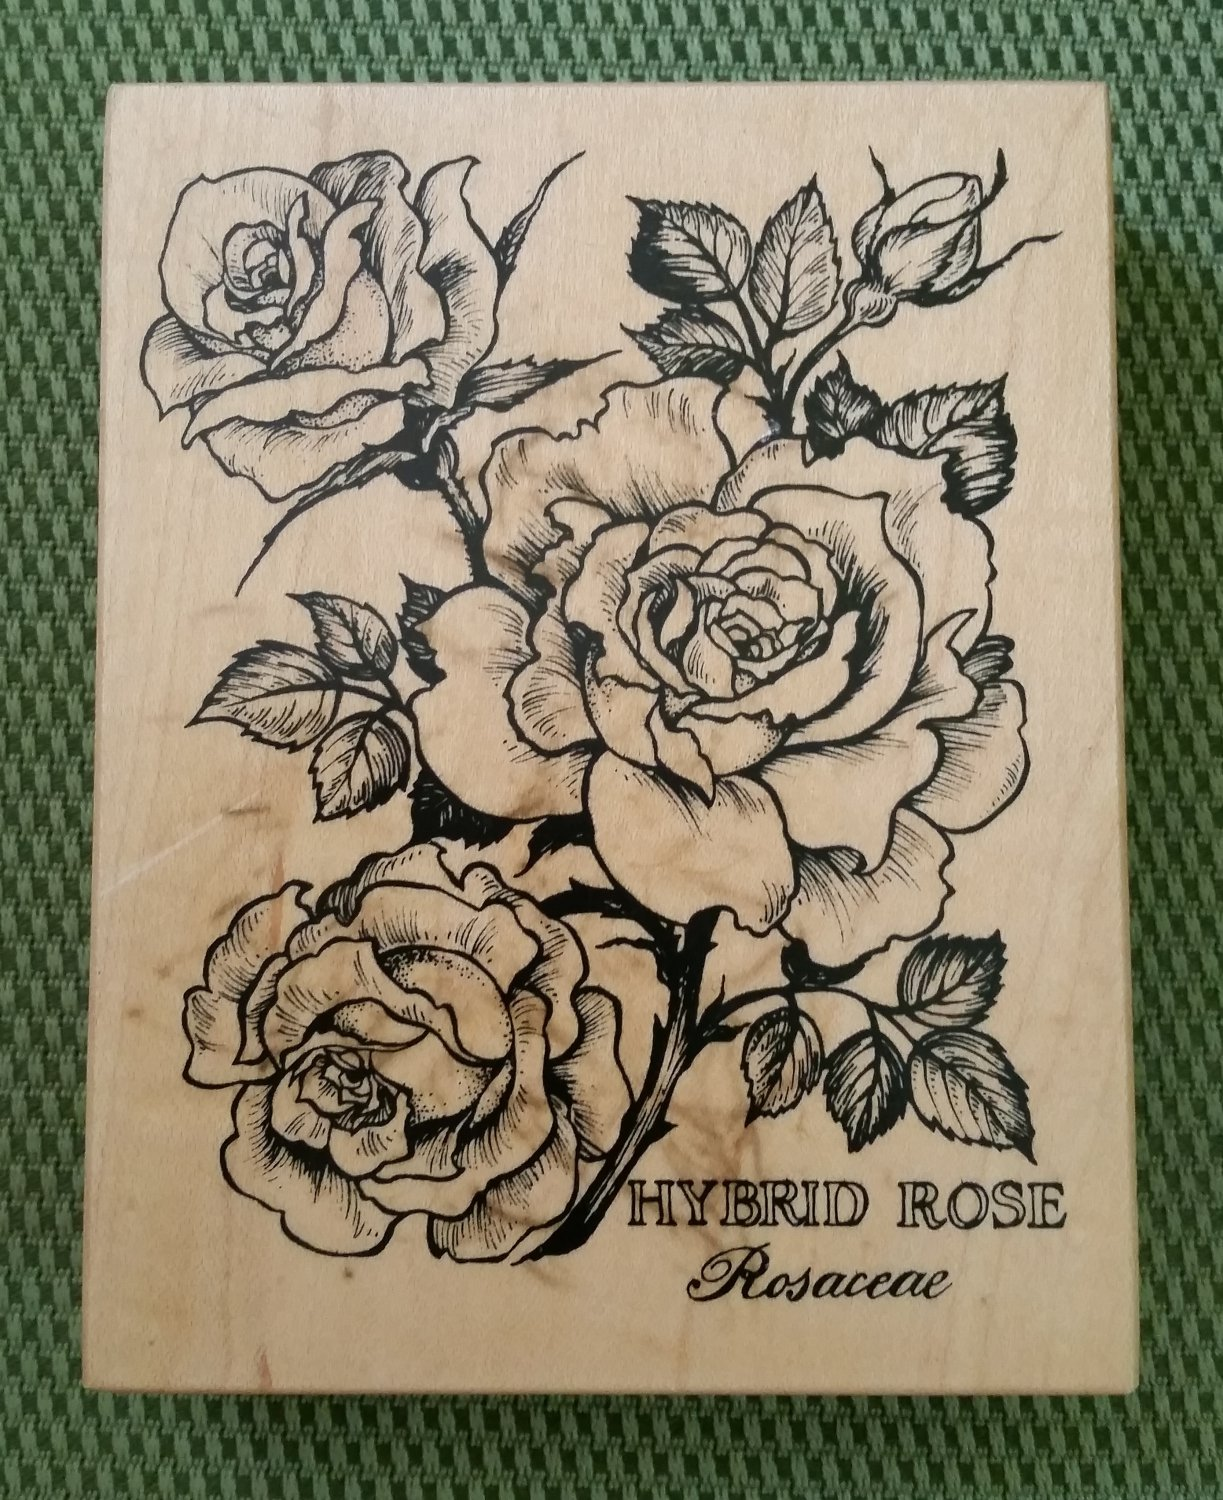 Hybrid Rose Rosaceae Wood Mounted Rubber Stamp #K-1636 by PSX from 1995-MADE IN USA-RETIRED-NEW!